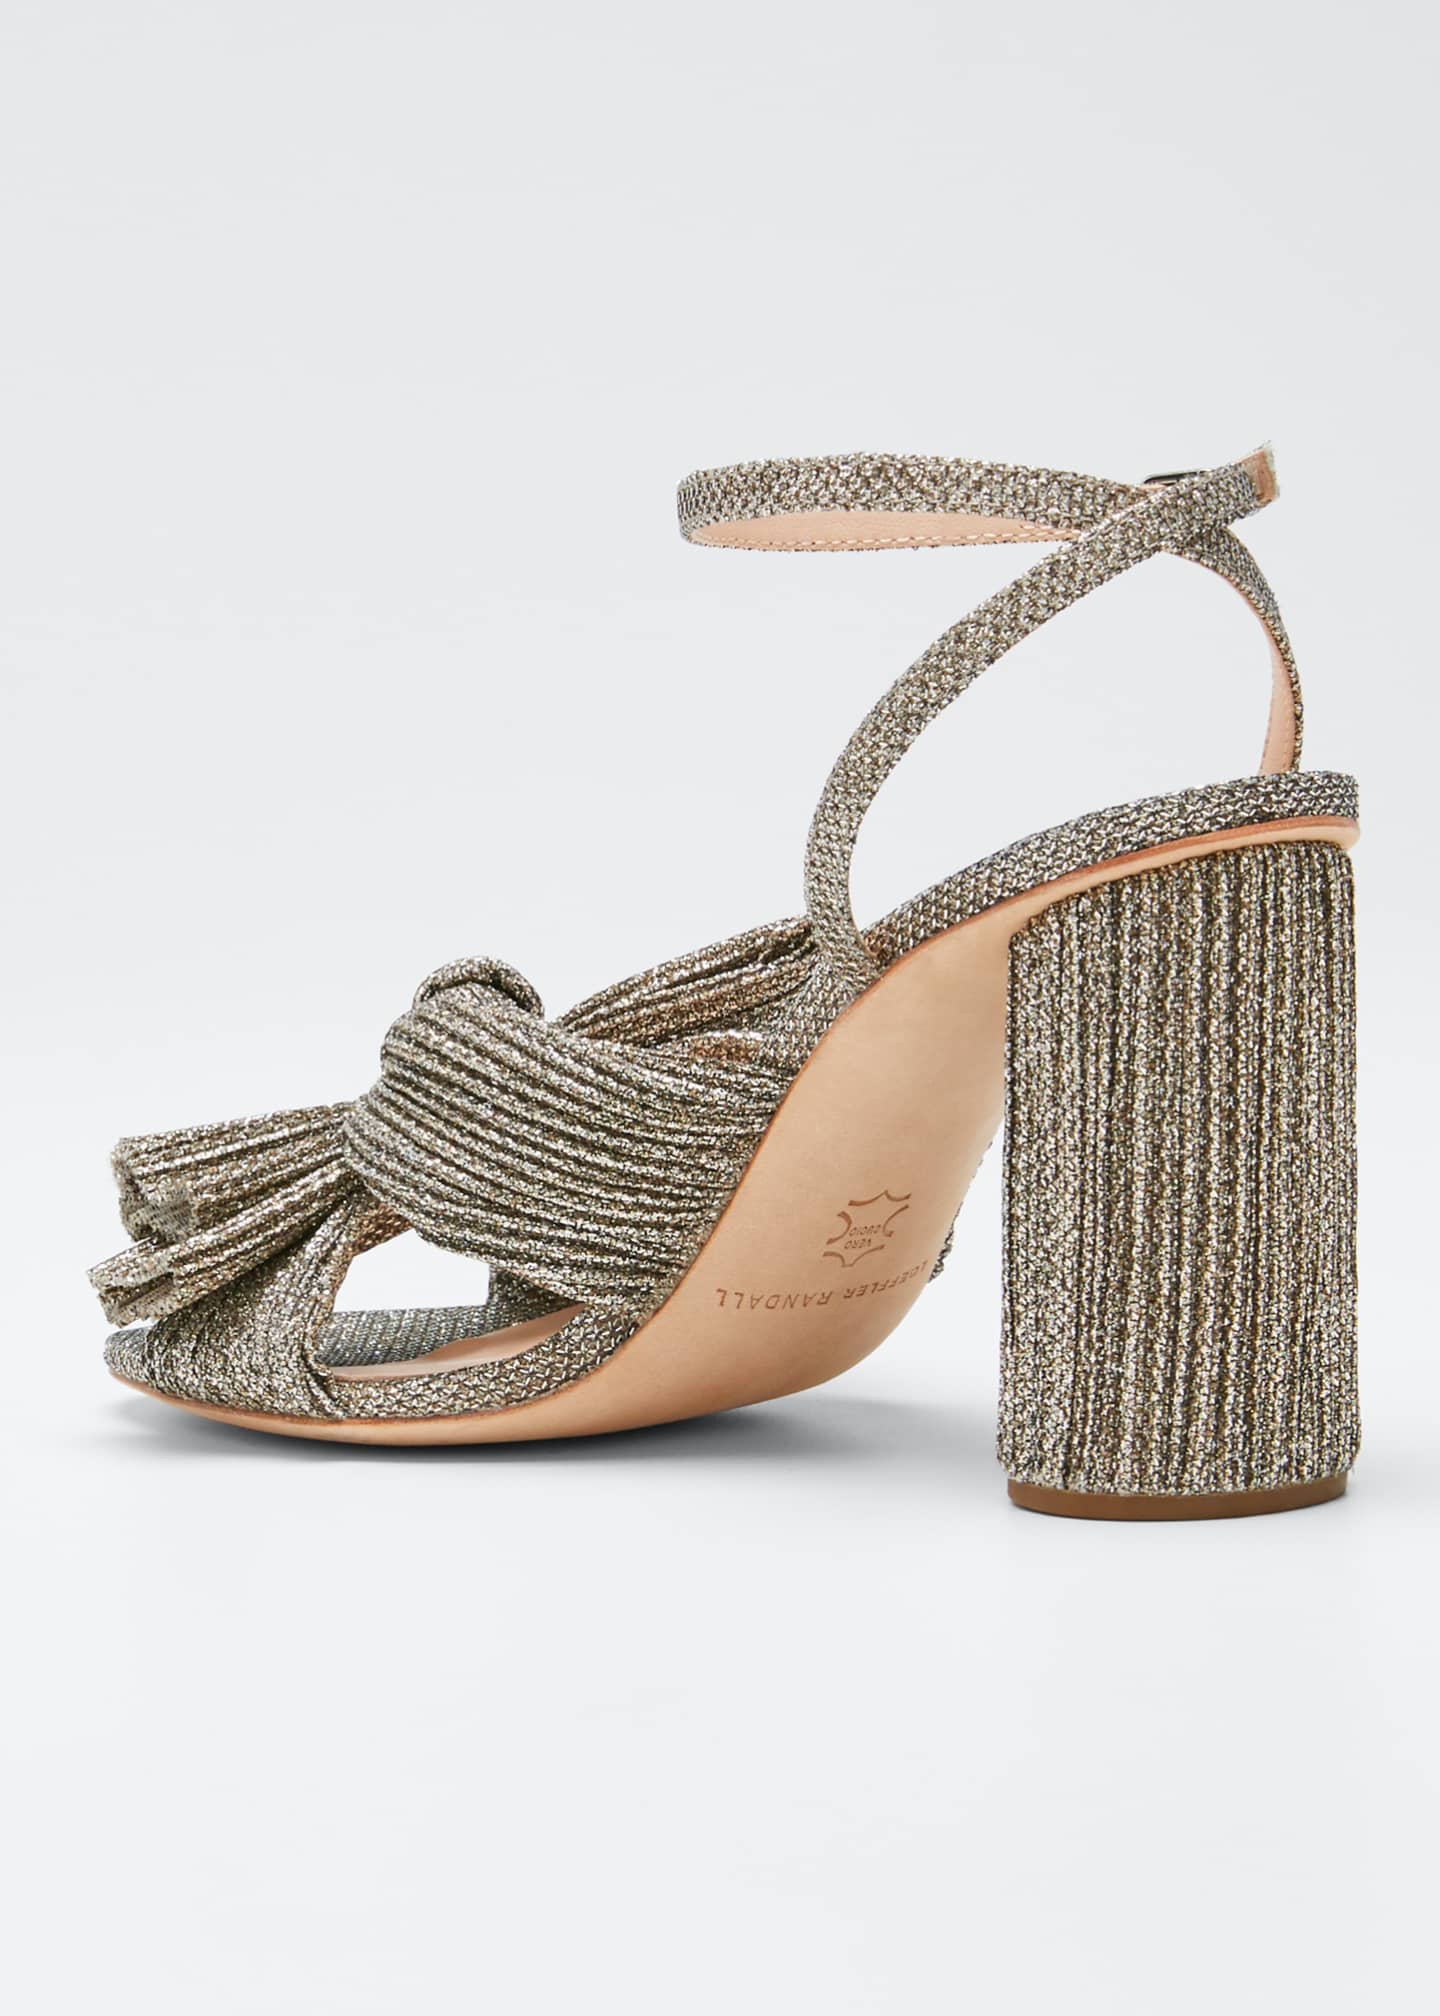 Image 2 of 3: Camellia Knotted Ankle-Strap Sandals